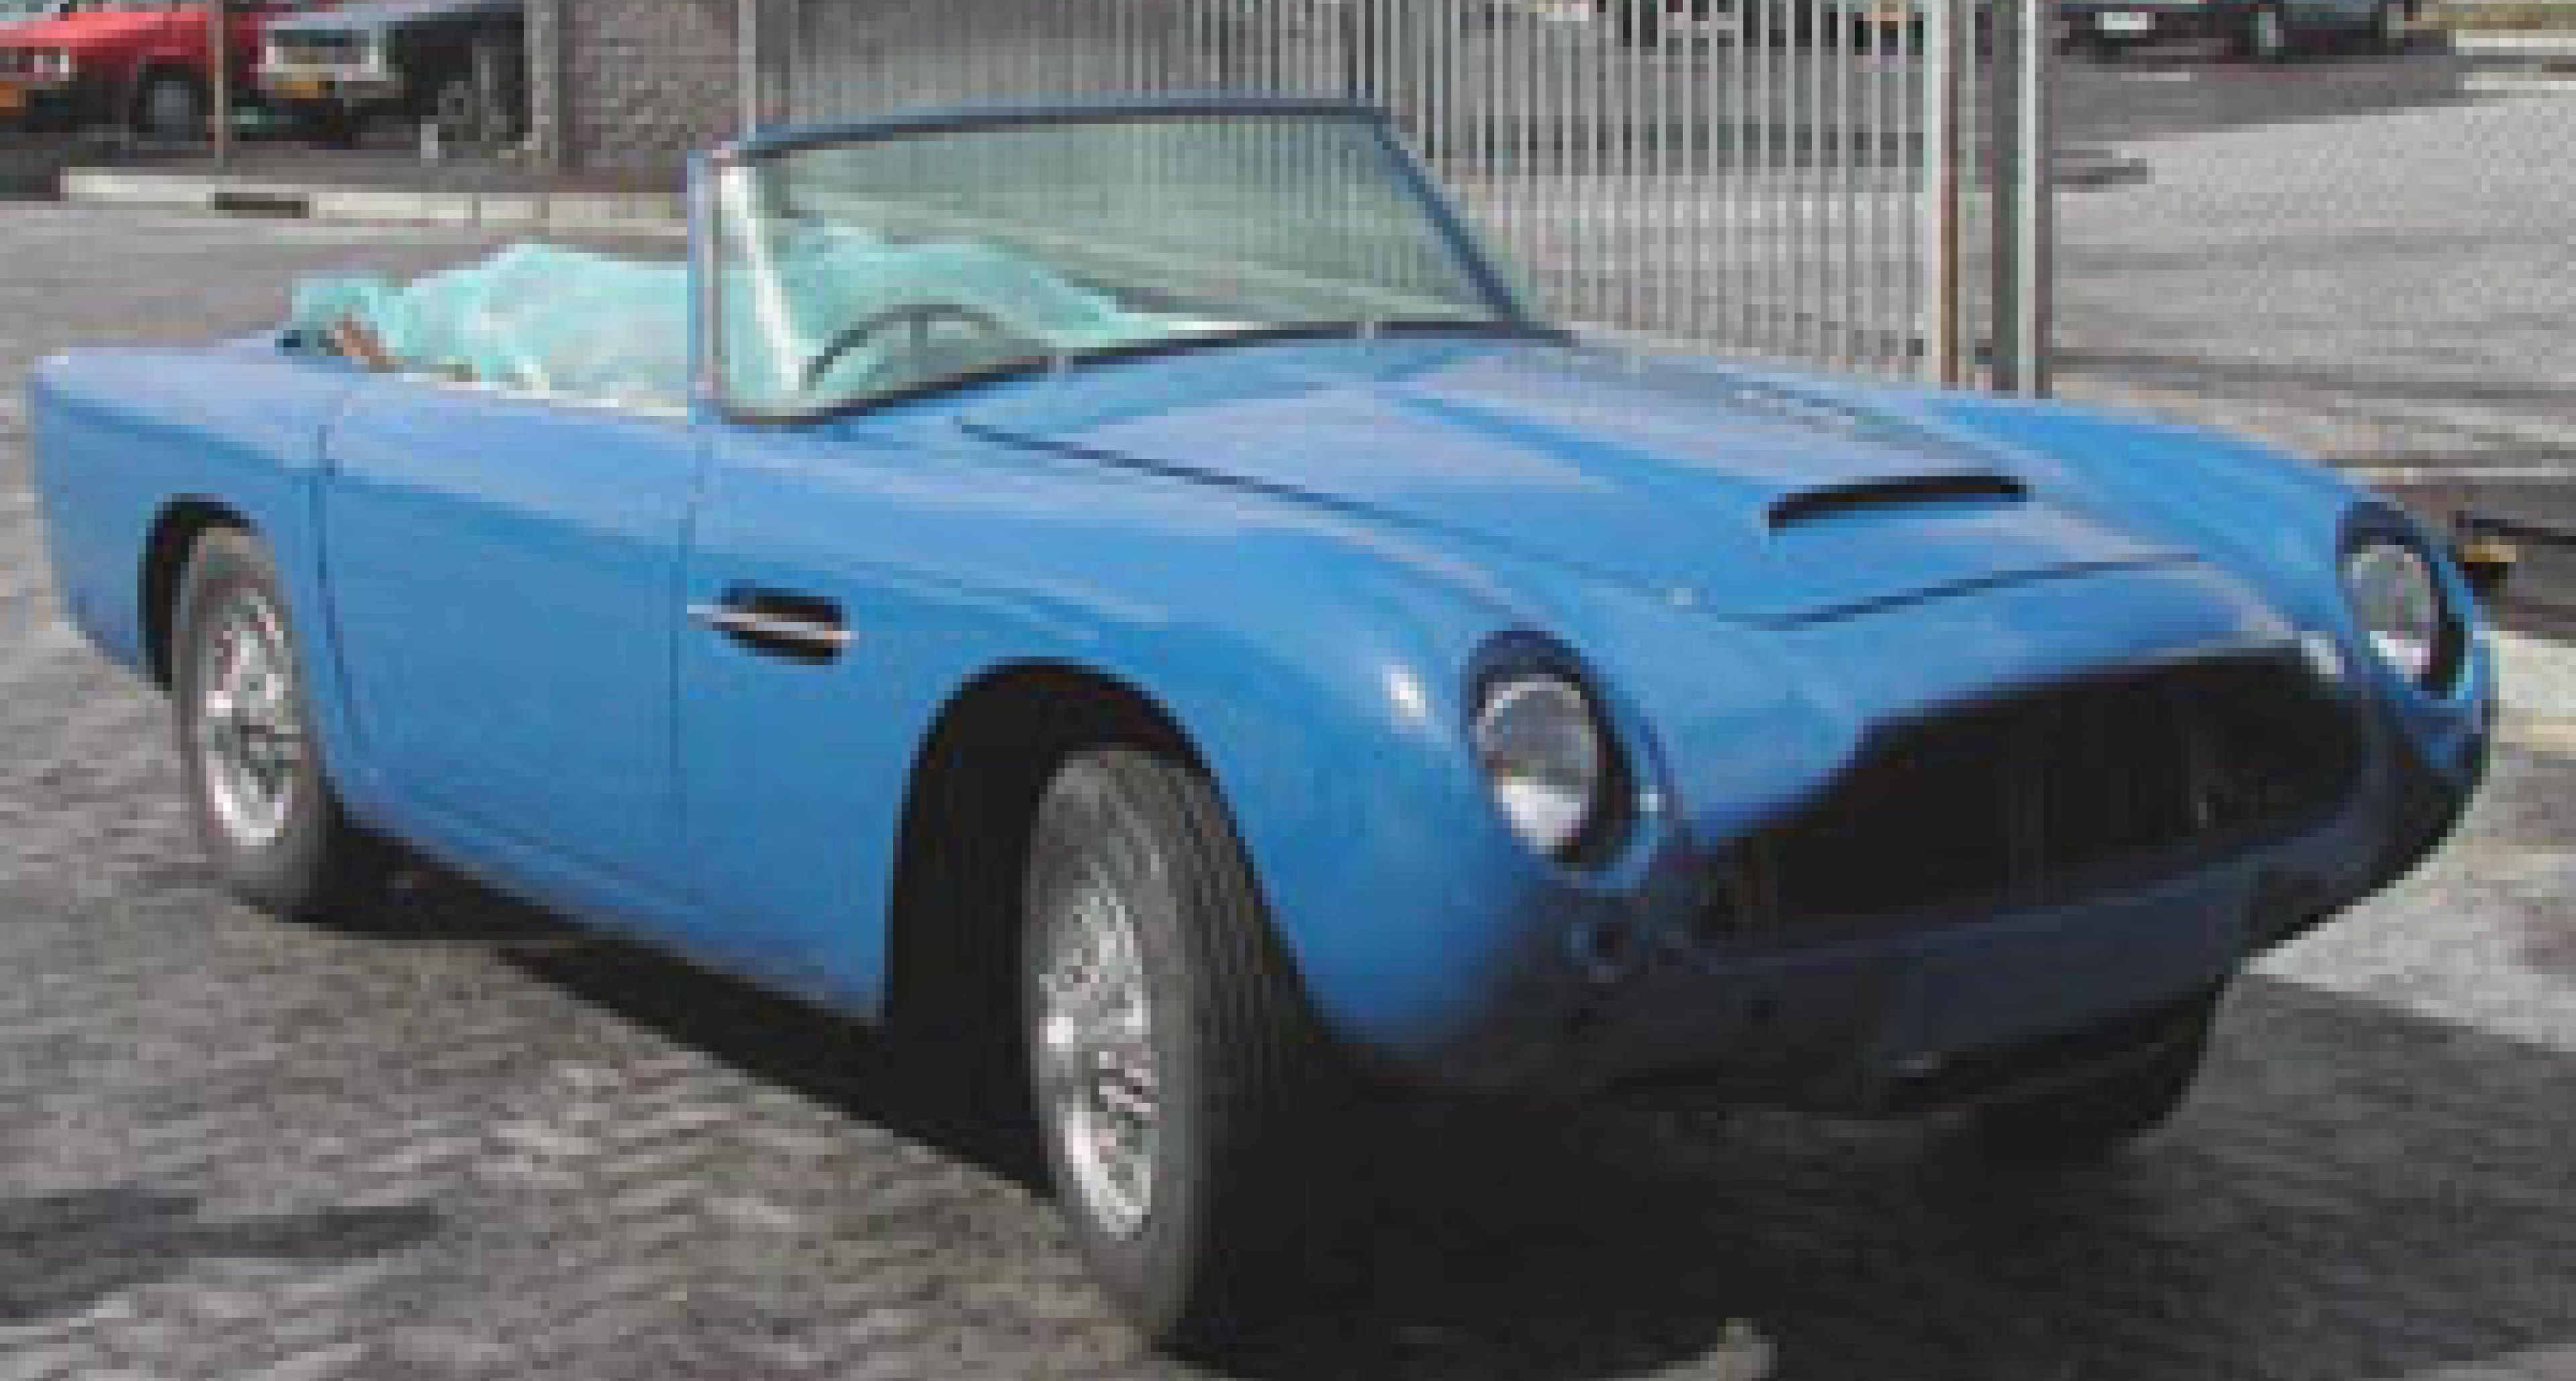 1965 Aston Martin Short Chassis Volante - Brought back to life